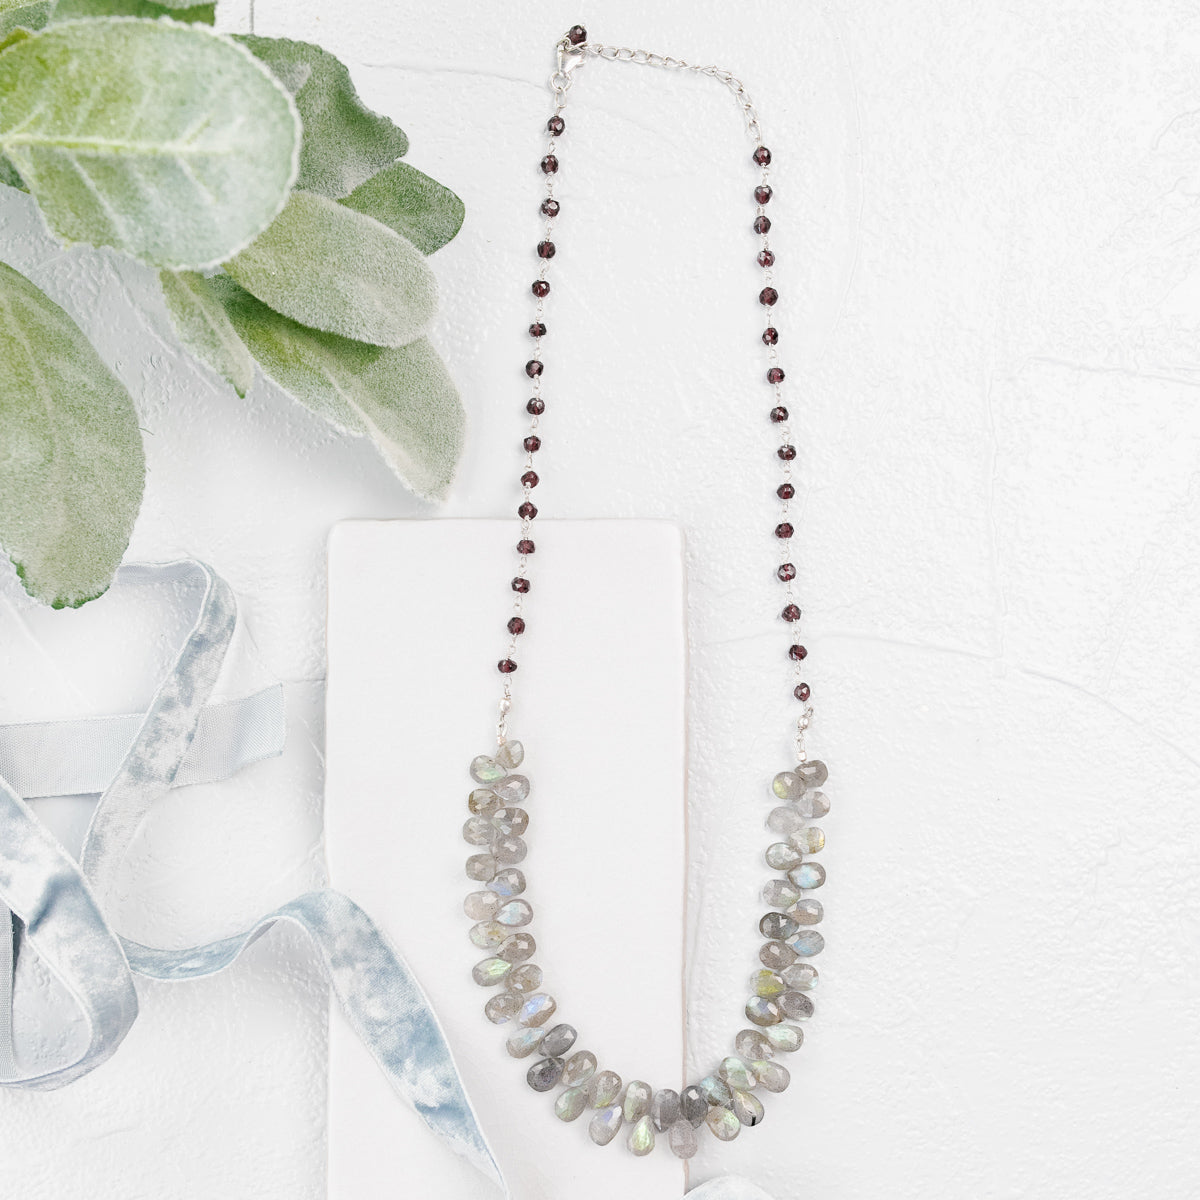 Garnet Labradorite Statement Necklace